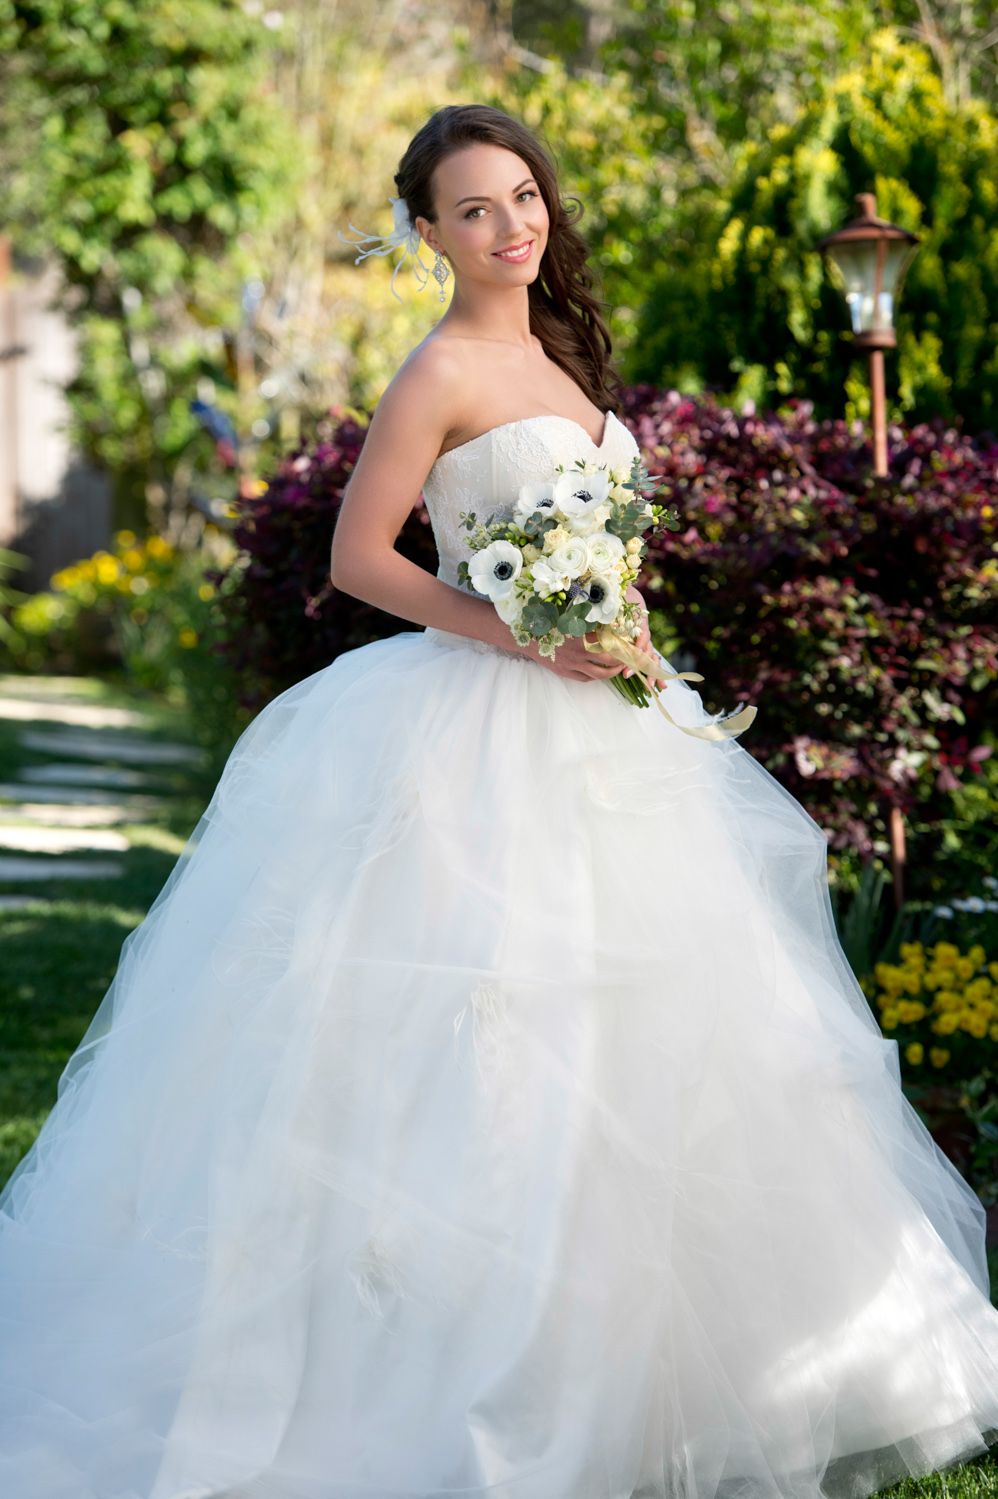 Bridal Fashion Photograhy 014.jpg